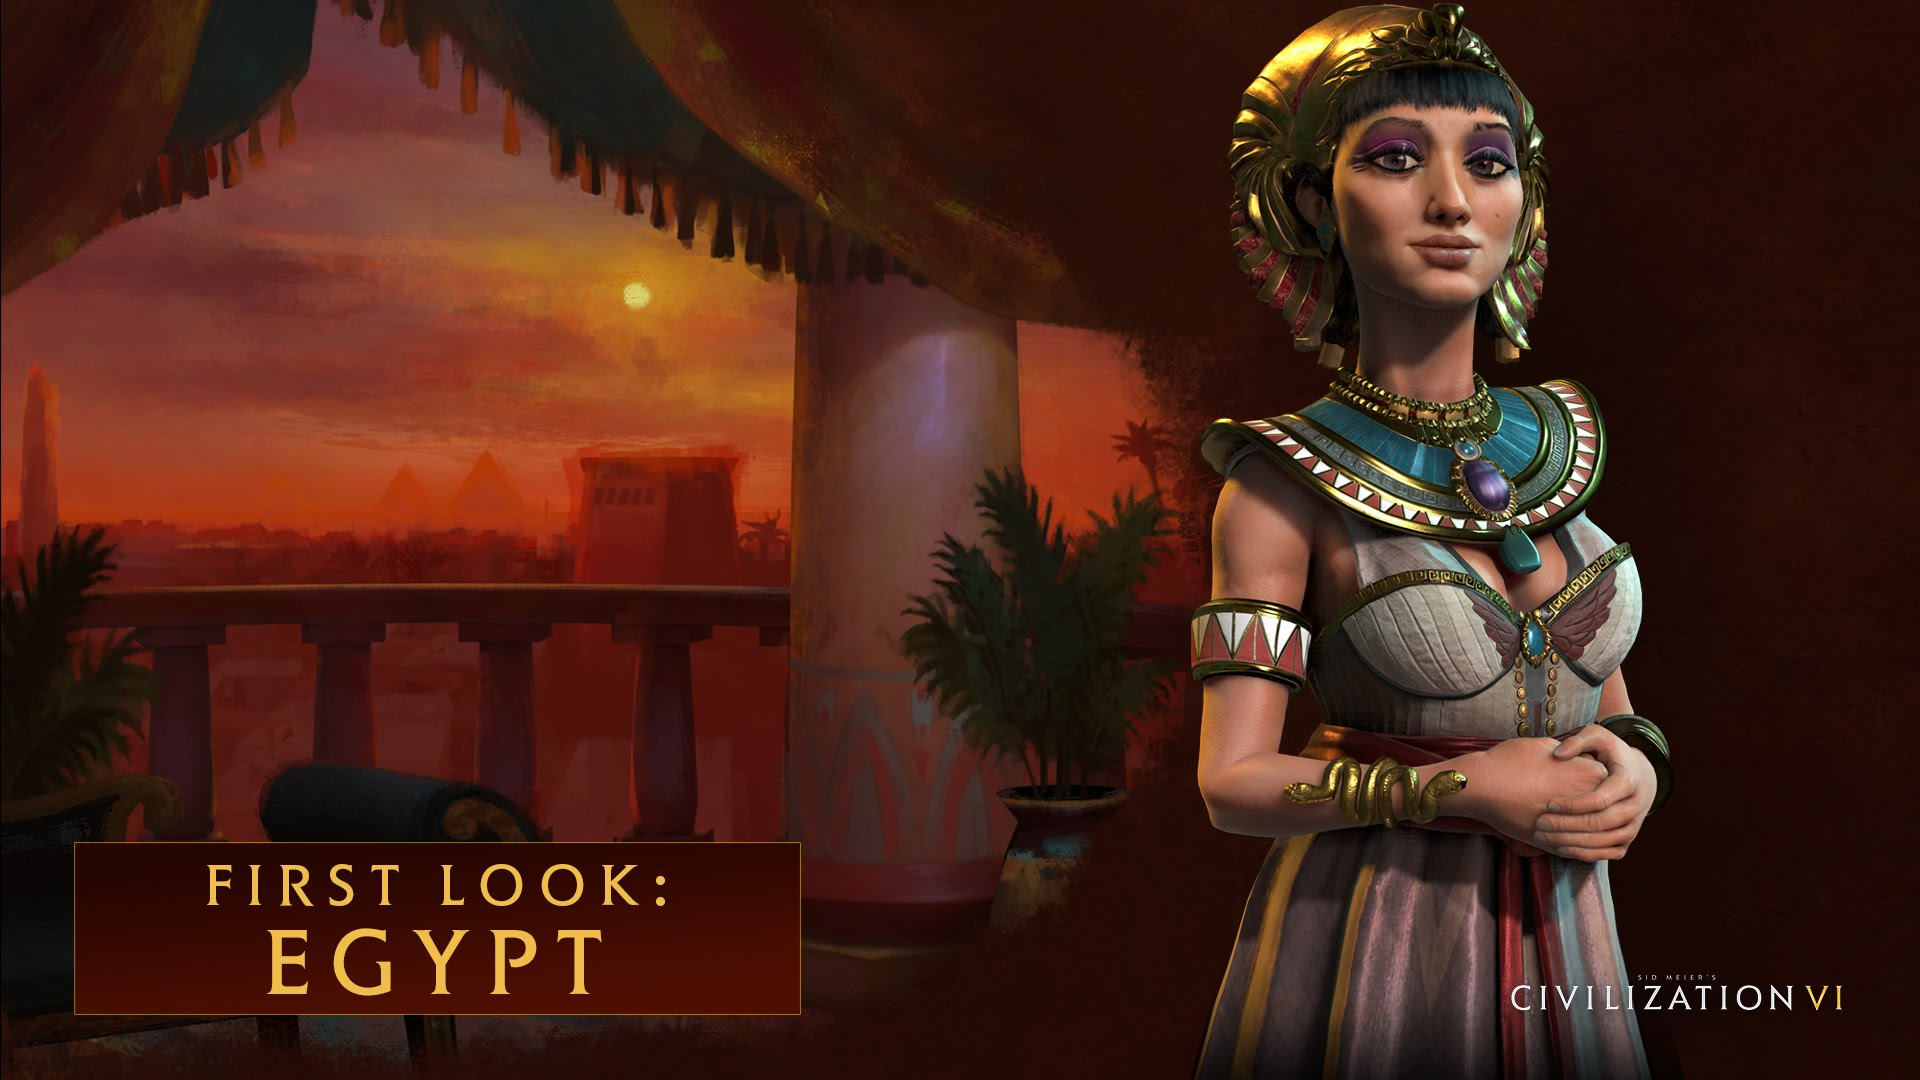 CIVILIZATION VI - First Look: Egypt